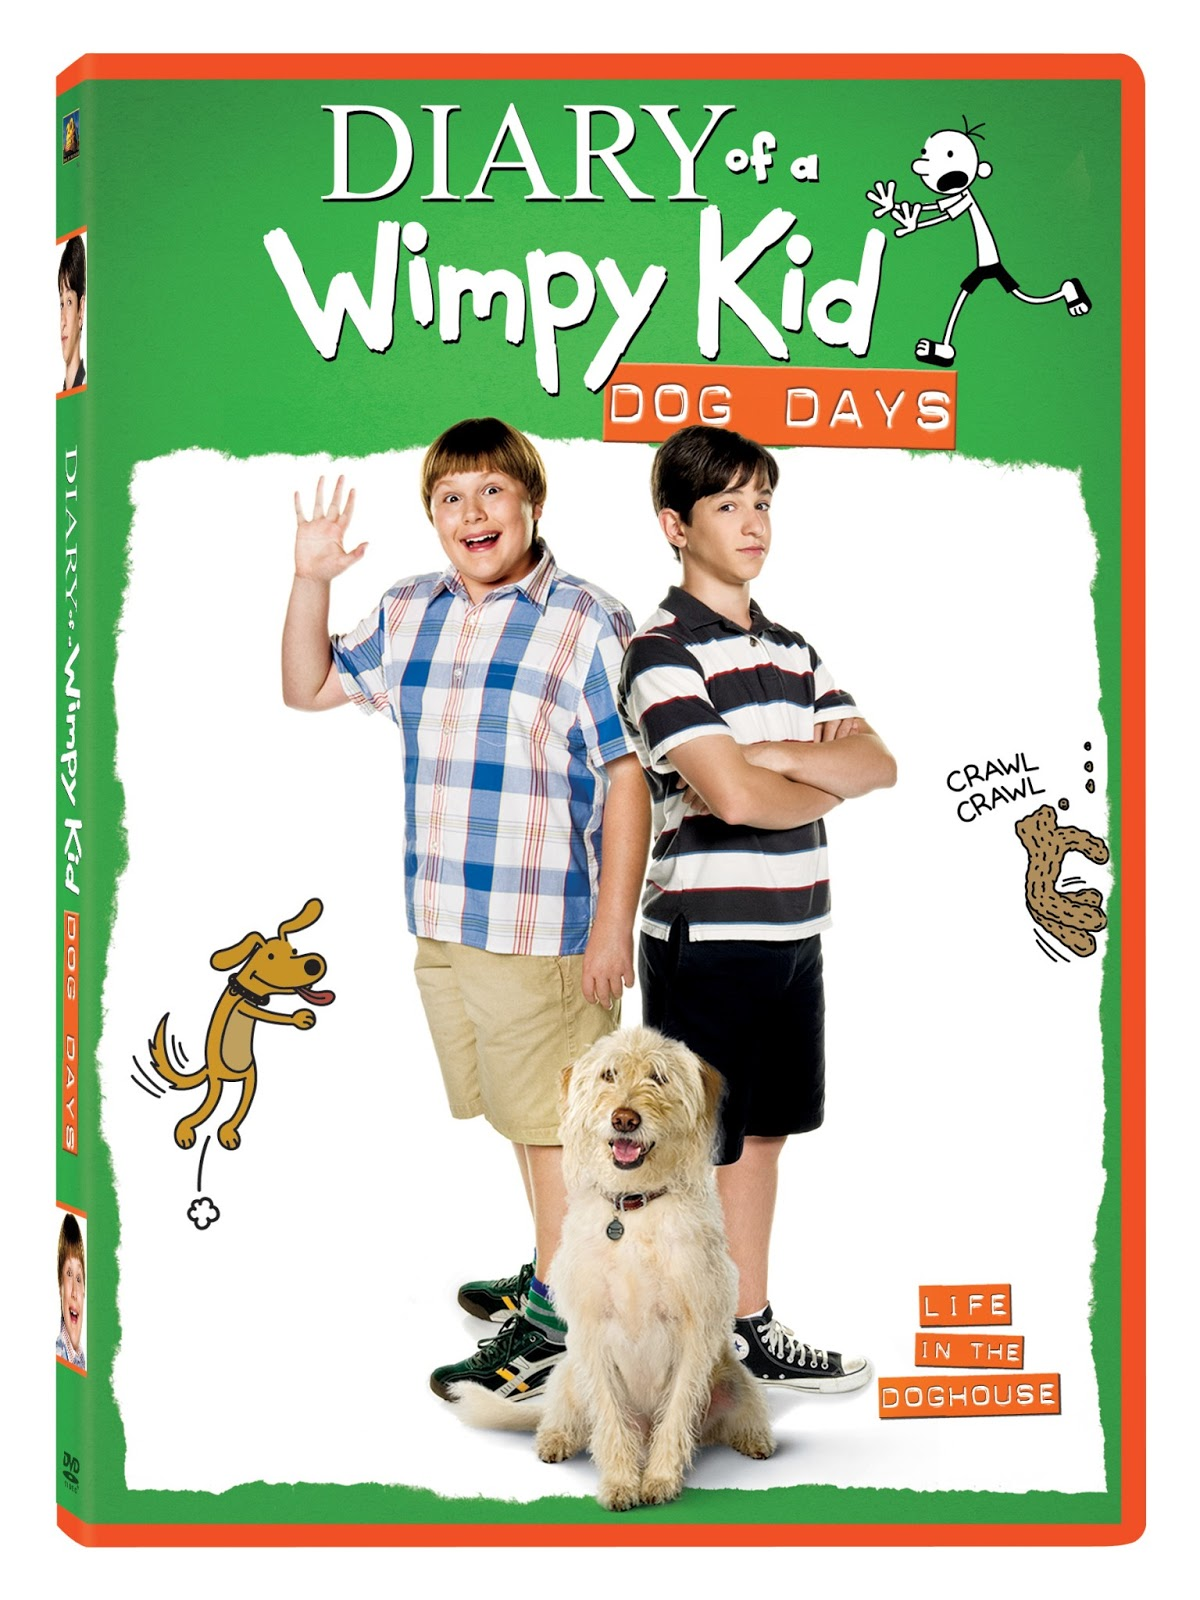 Dog Days Diary Of A Wimpy Kid Copyright Date